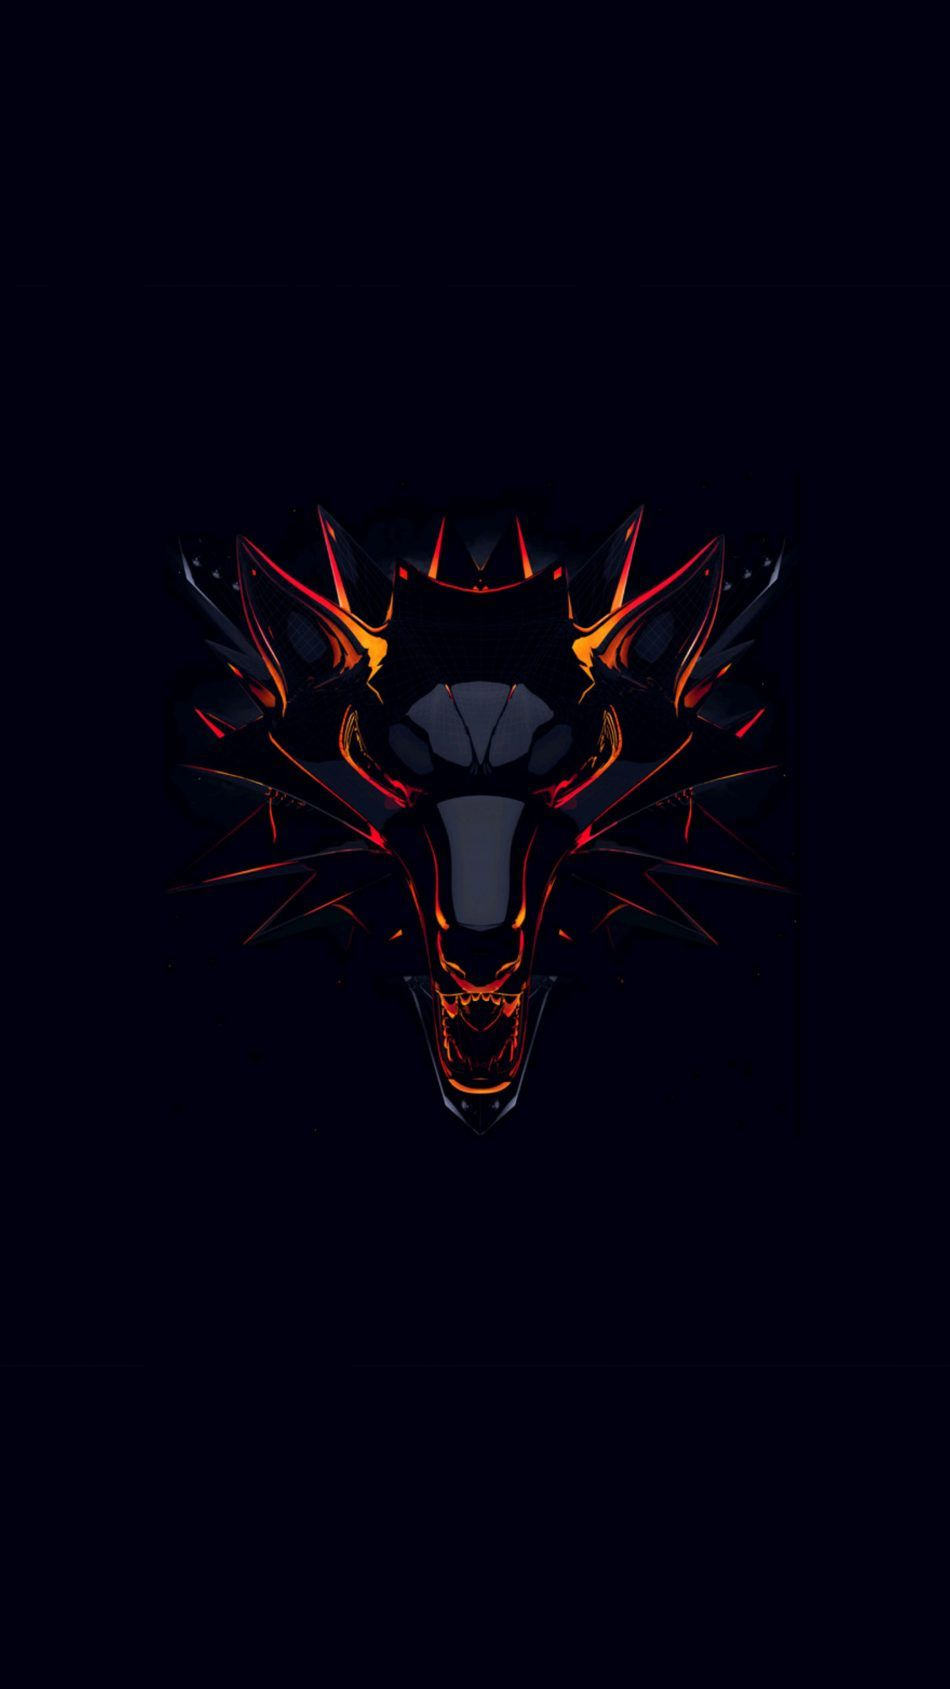 Witcher Dark Background Minimal Dark Wallpaper Hd Dark